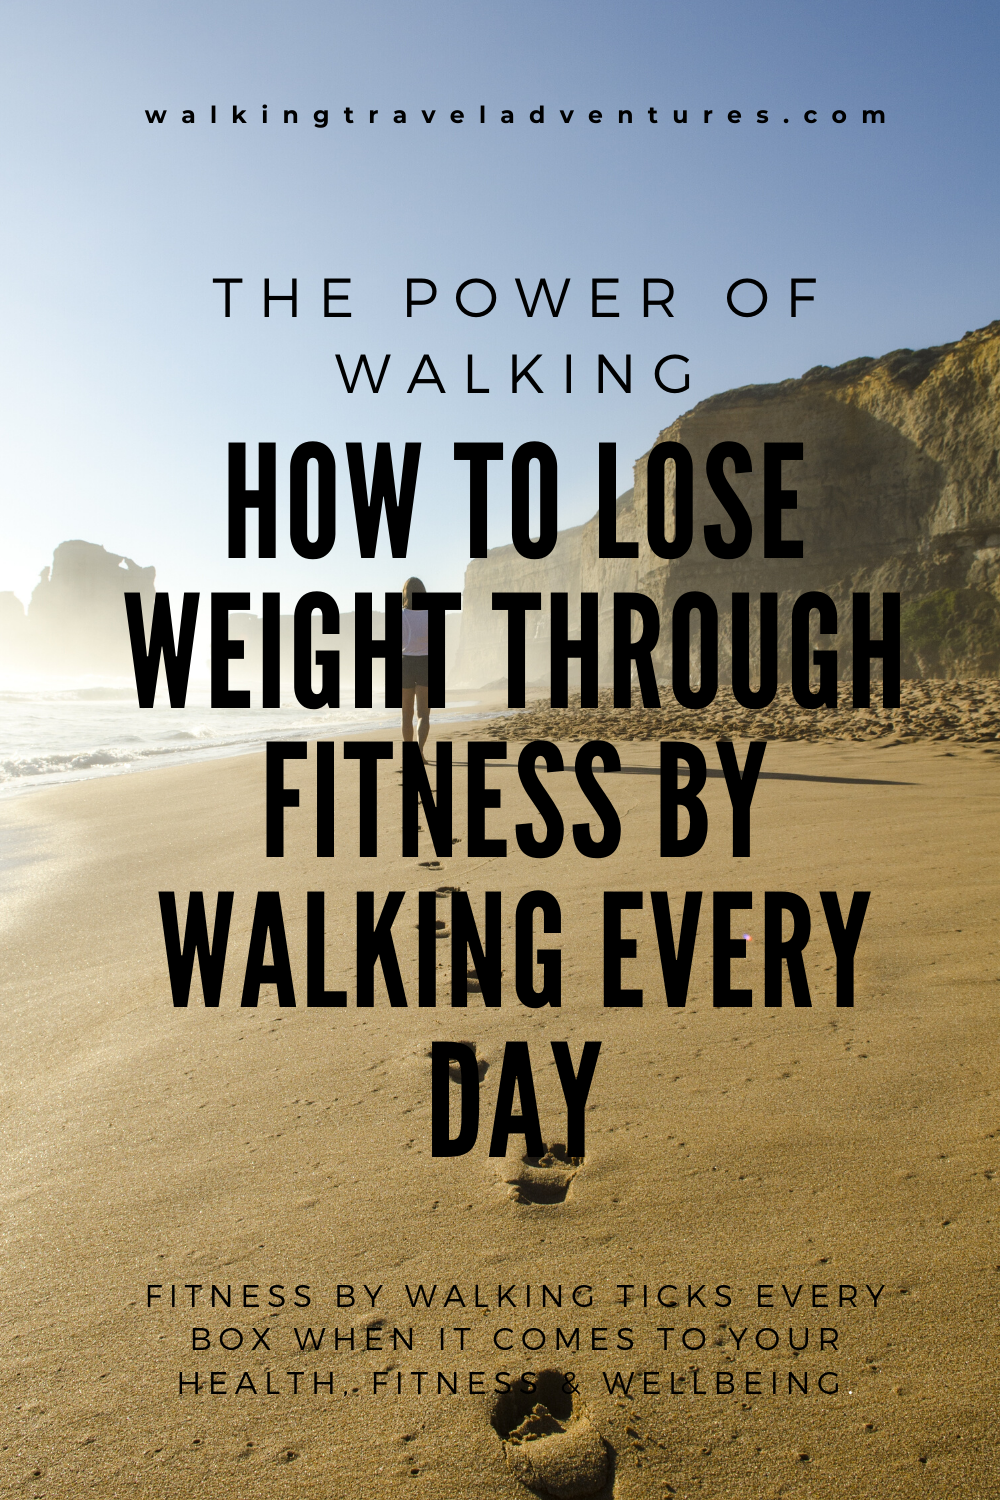 Fitness by walking ticks every box when it comes to your health, fitness & wellbeing. Fitness by walking offers a whole host of preventative and curative health benefits for your body & minds. #walking #nature #outdoor #hiking